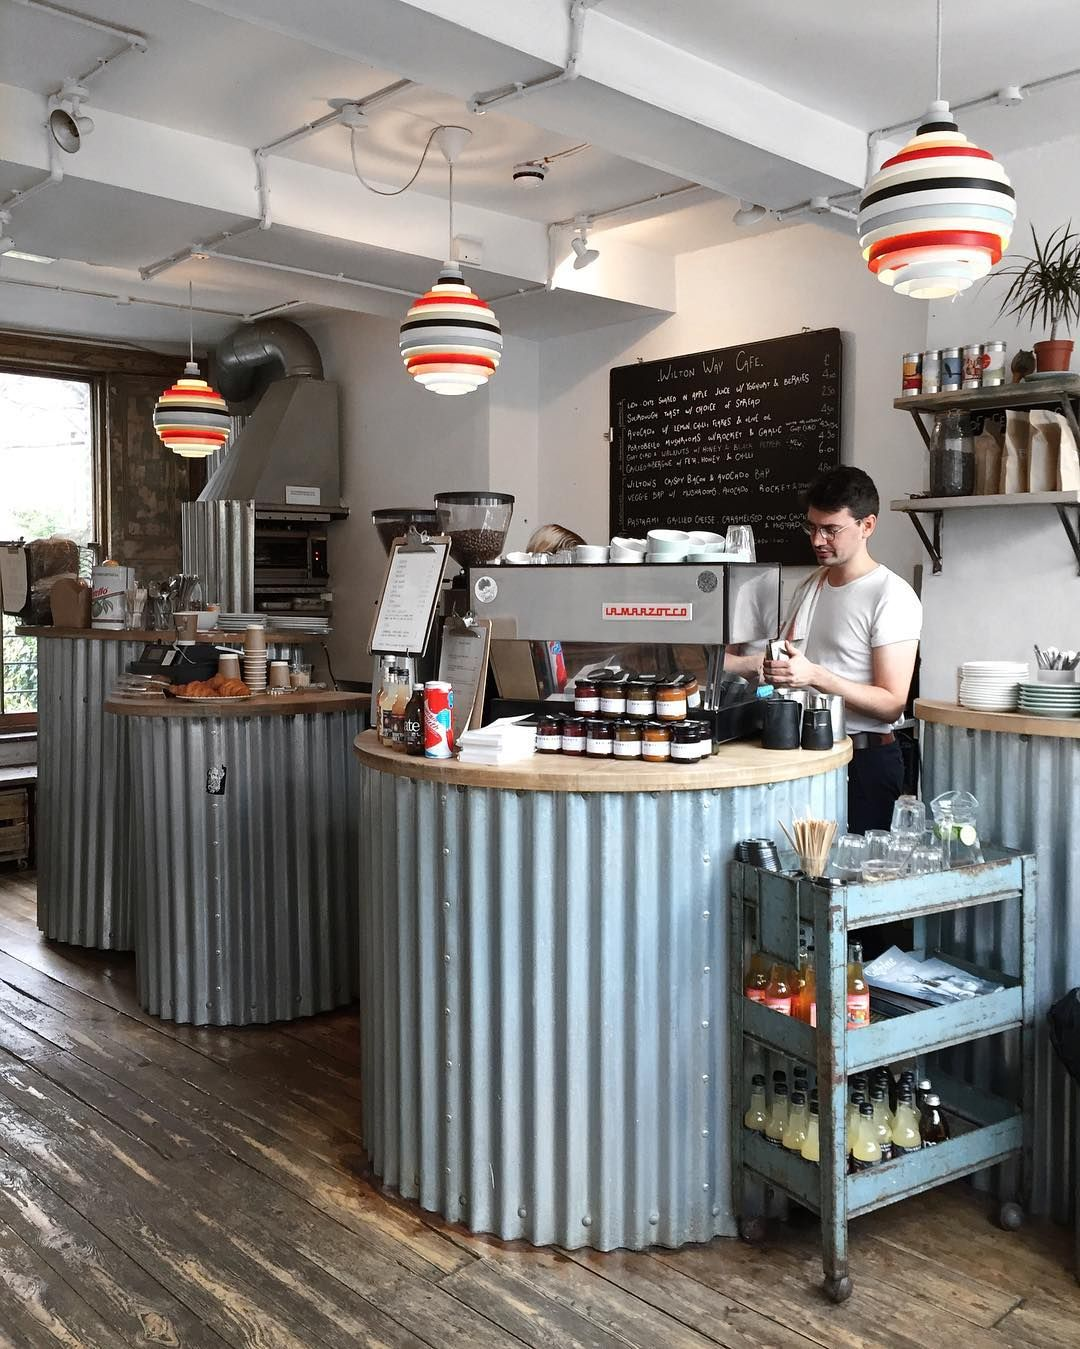 14 Coffee Shops In London You Want to Instagram | Cafe ...